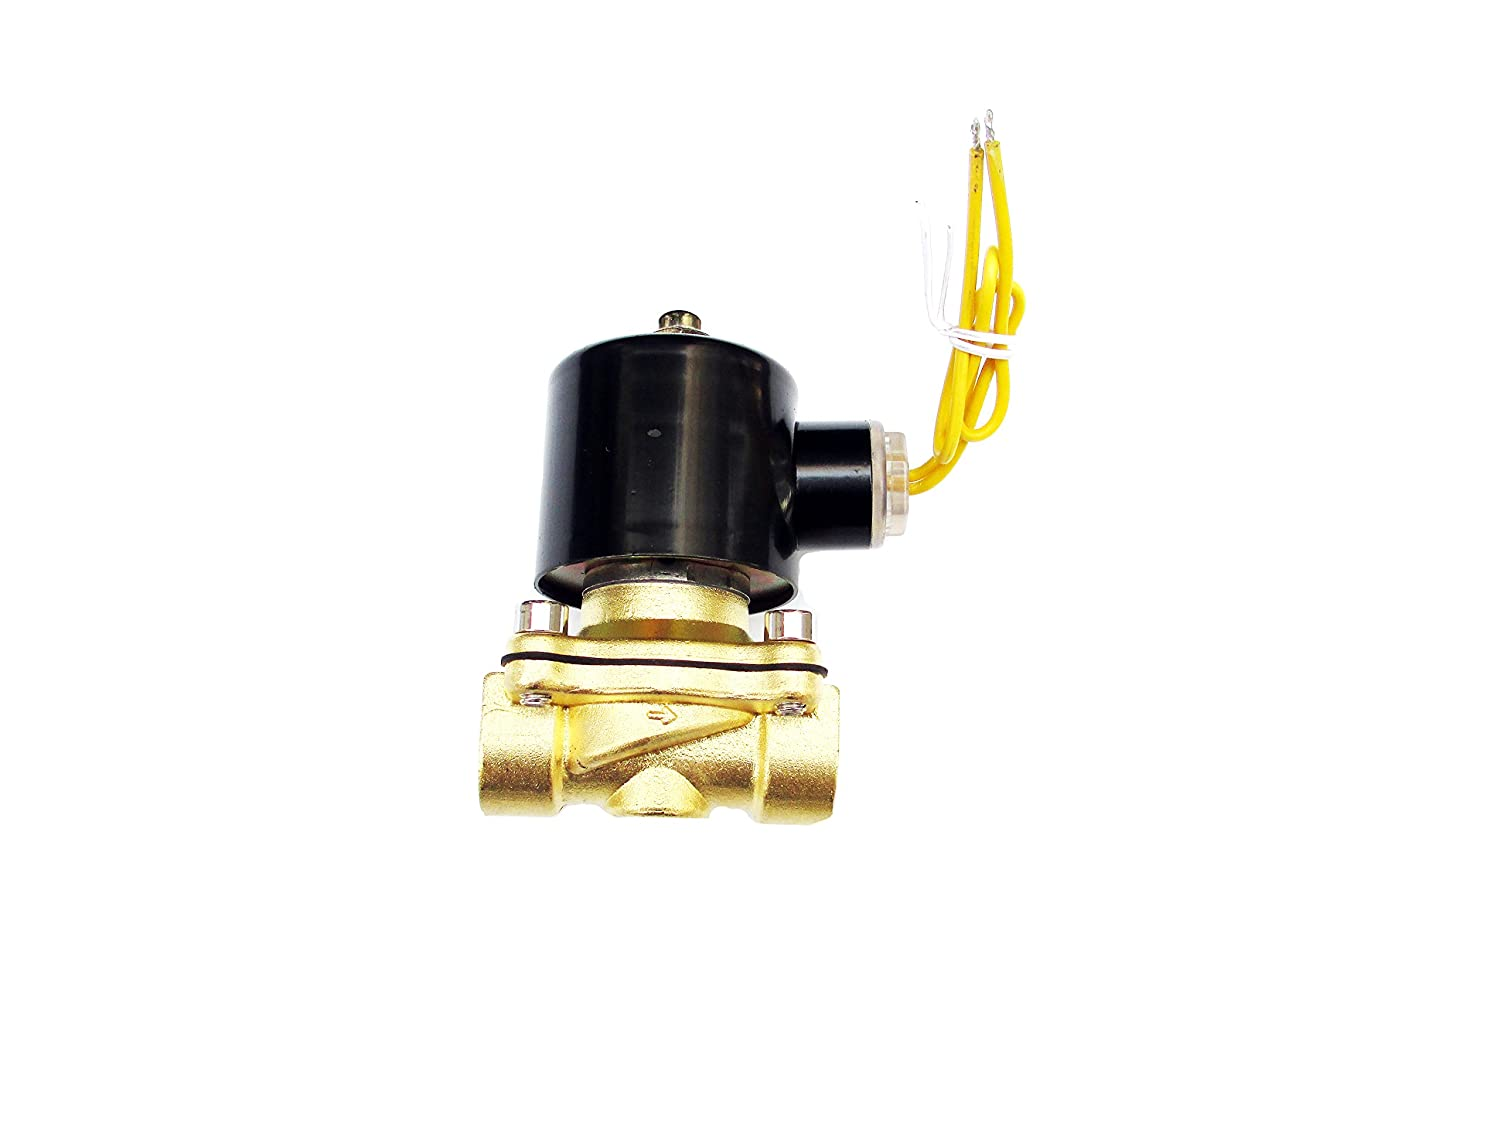 1/2 Solenoid Valve 110v/115v/120v AC Brass Electric Air Water Gas Diesel Normally Closed NPT High Flow